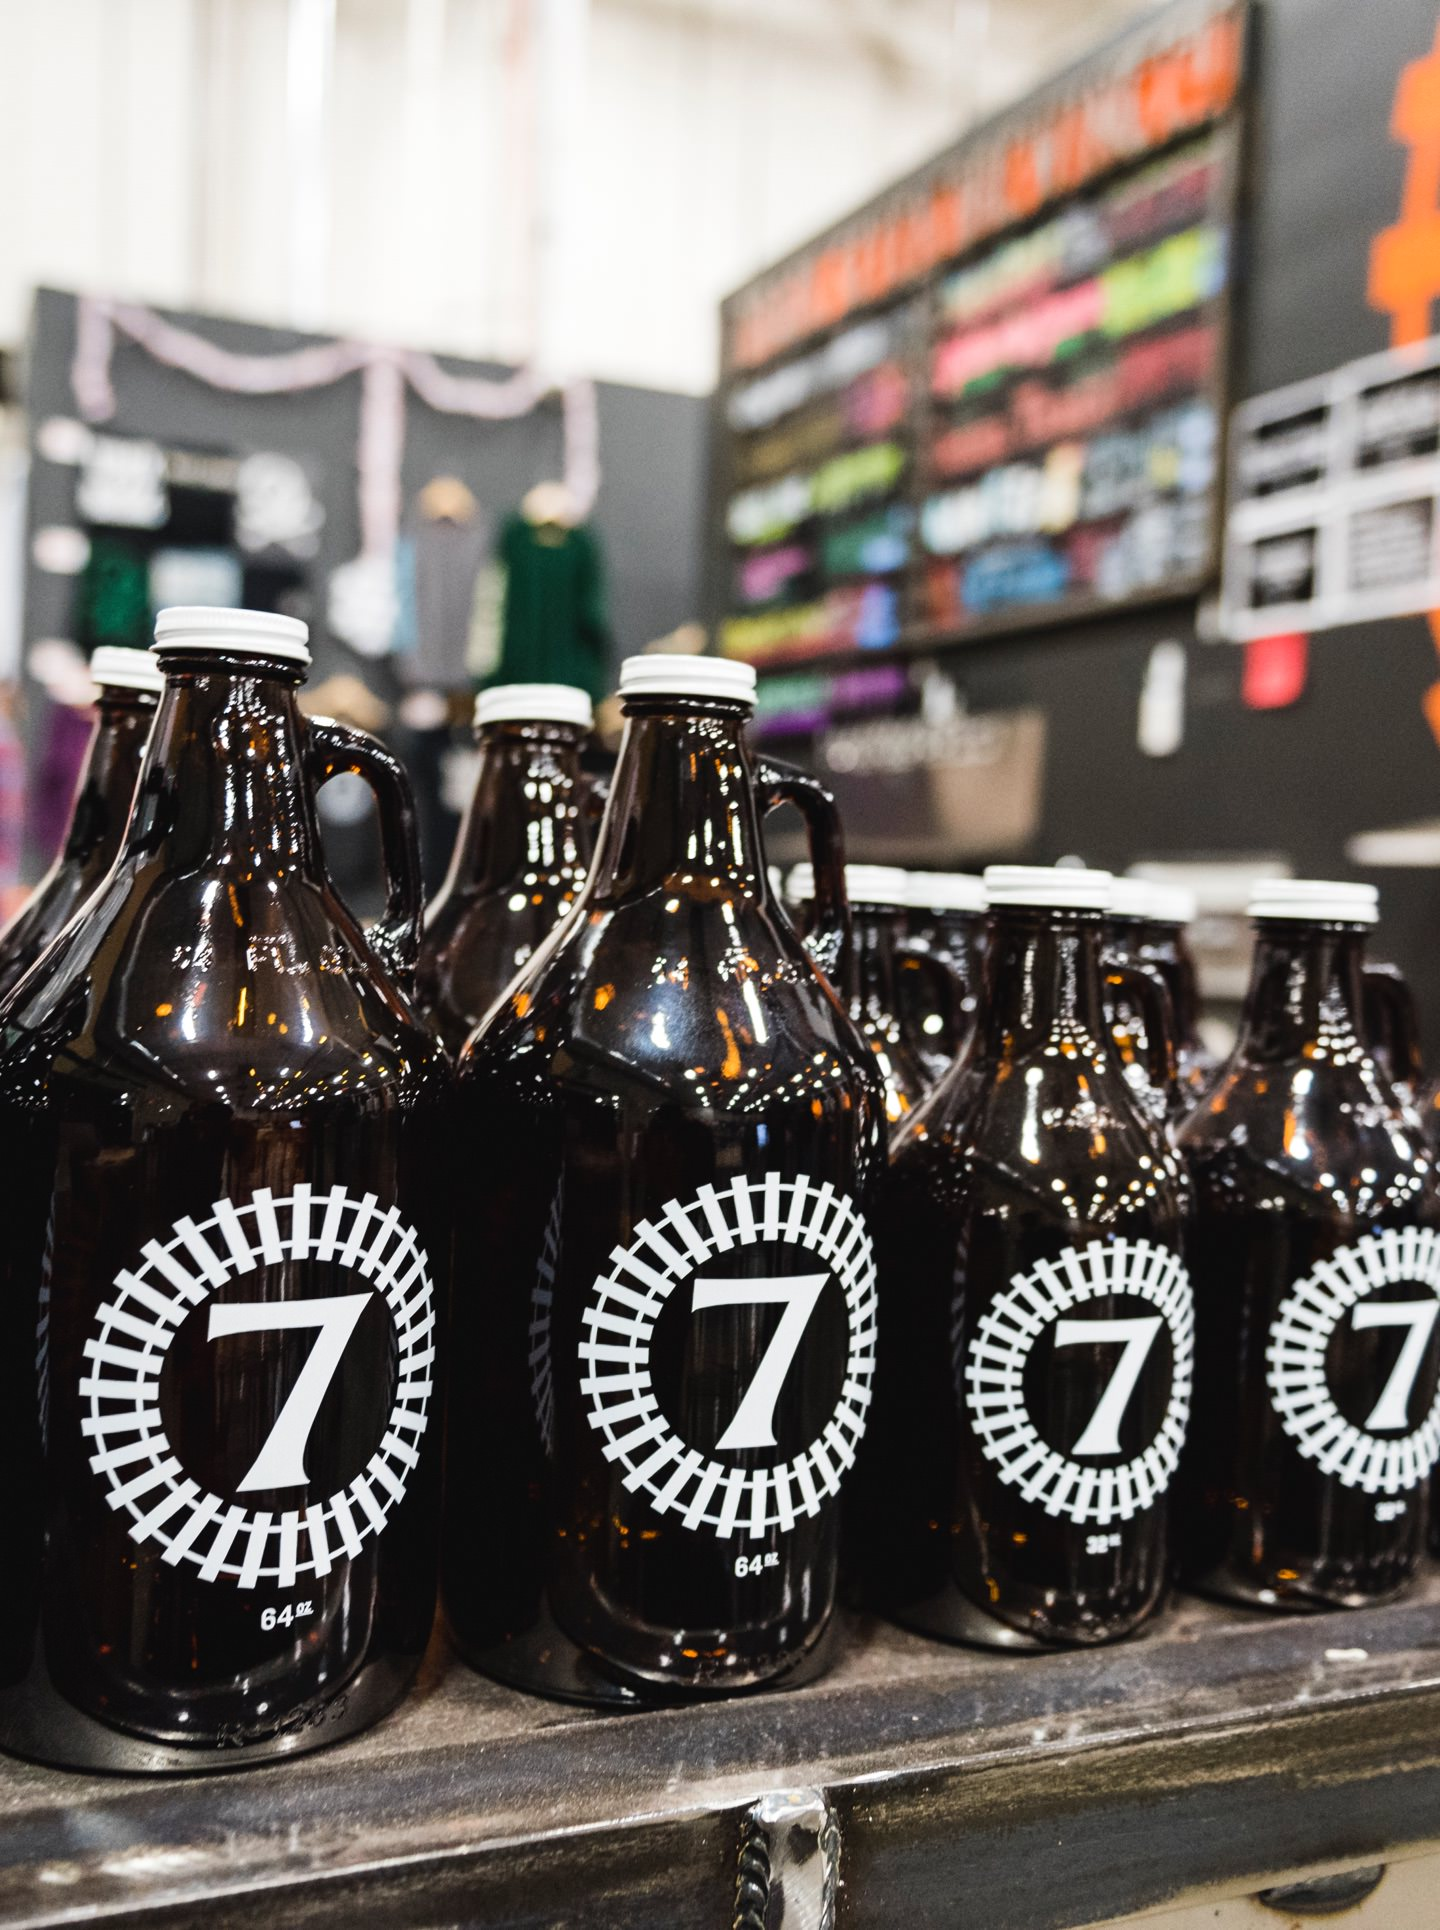 Beer Growler bottles with Track 7 logo